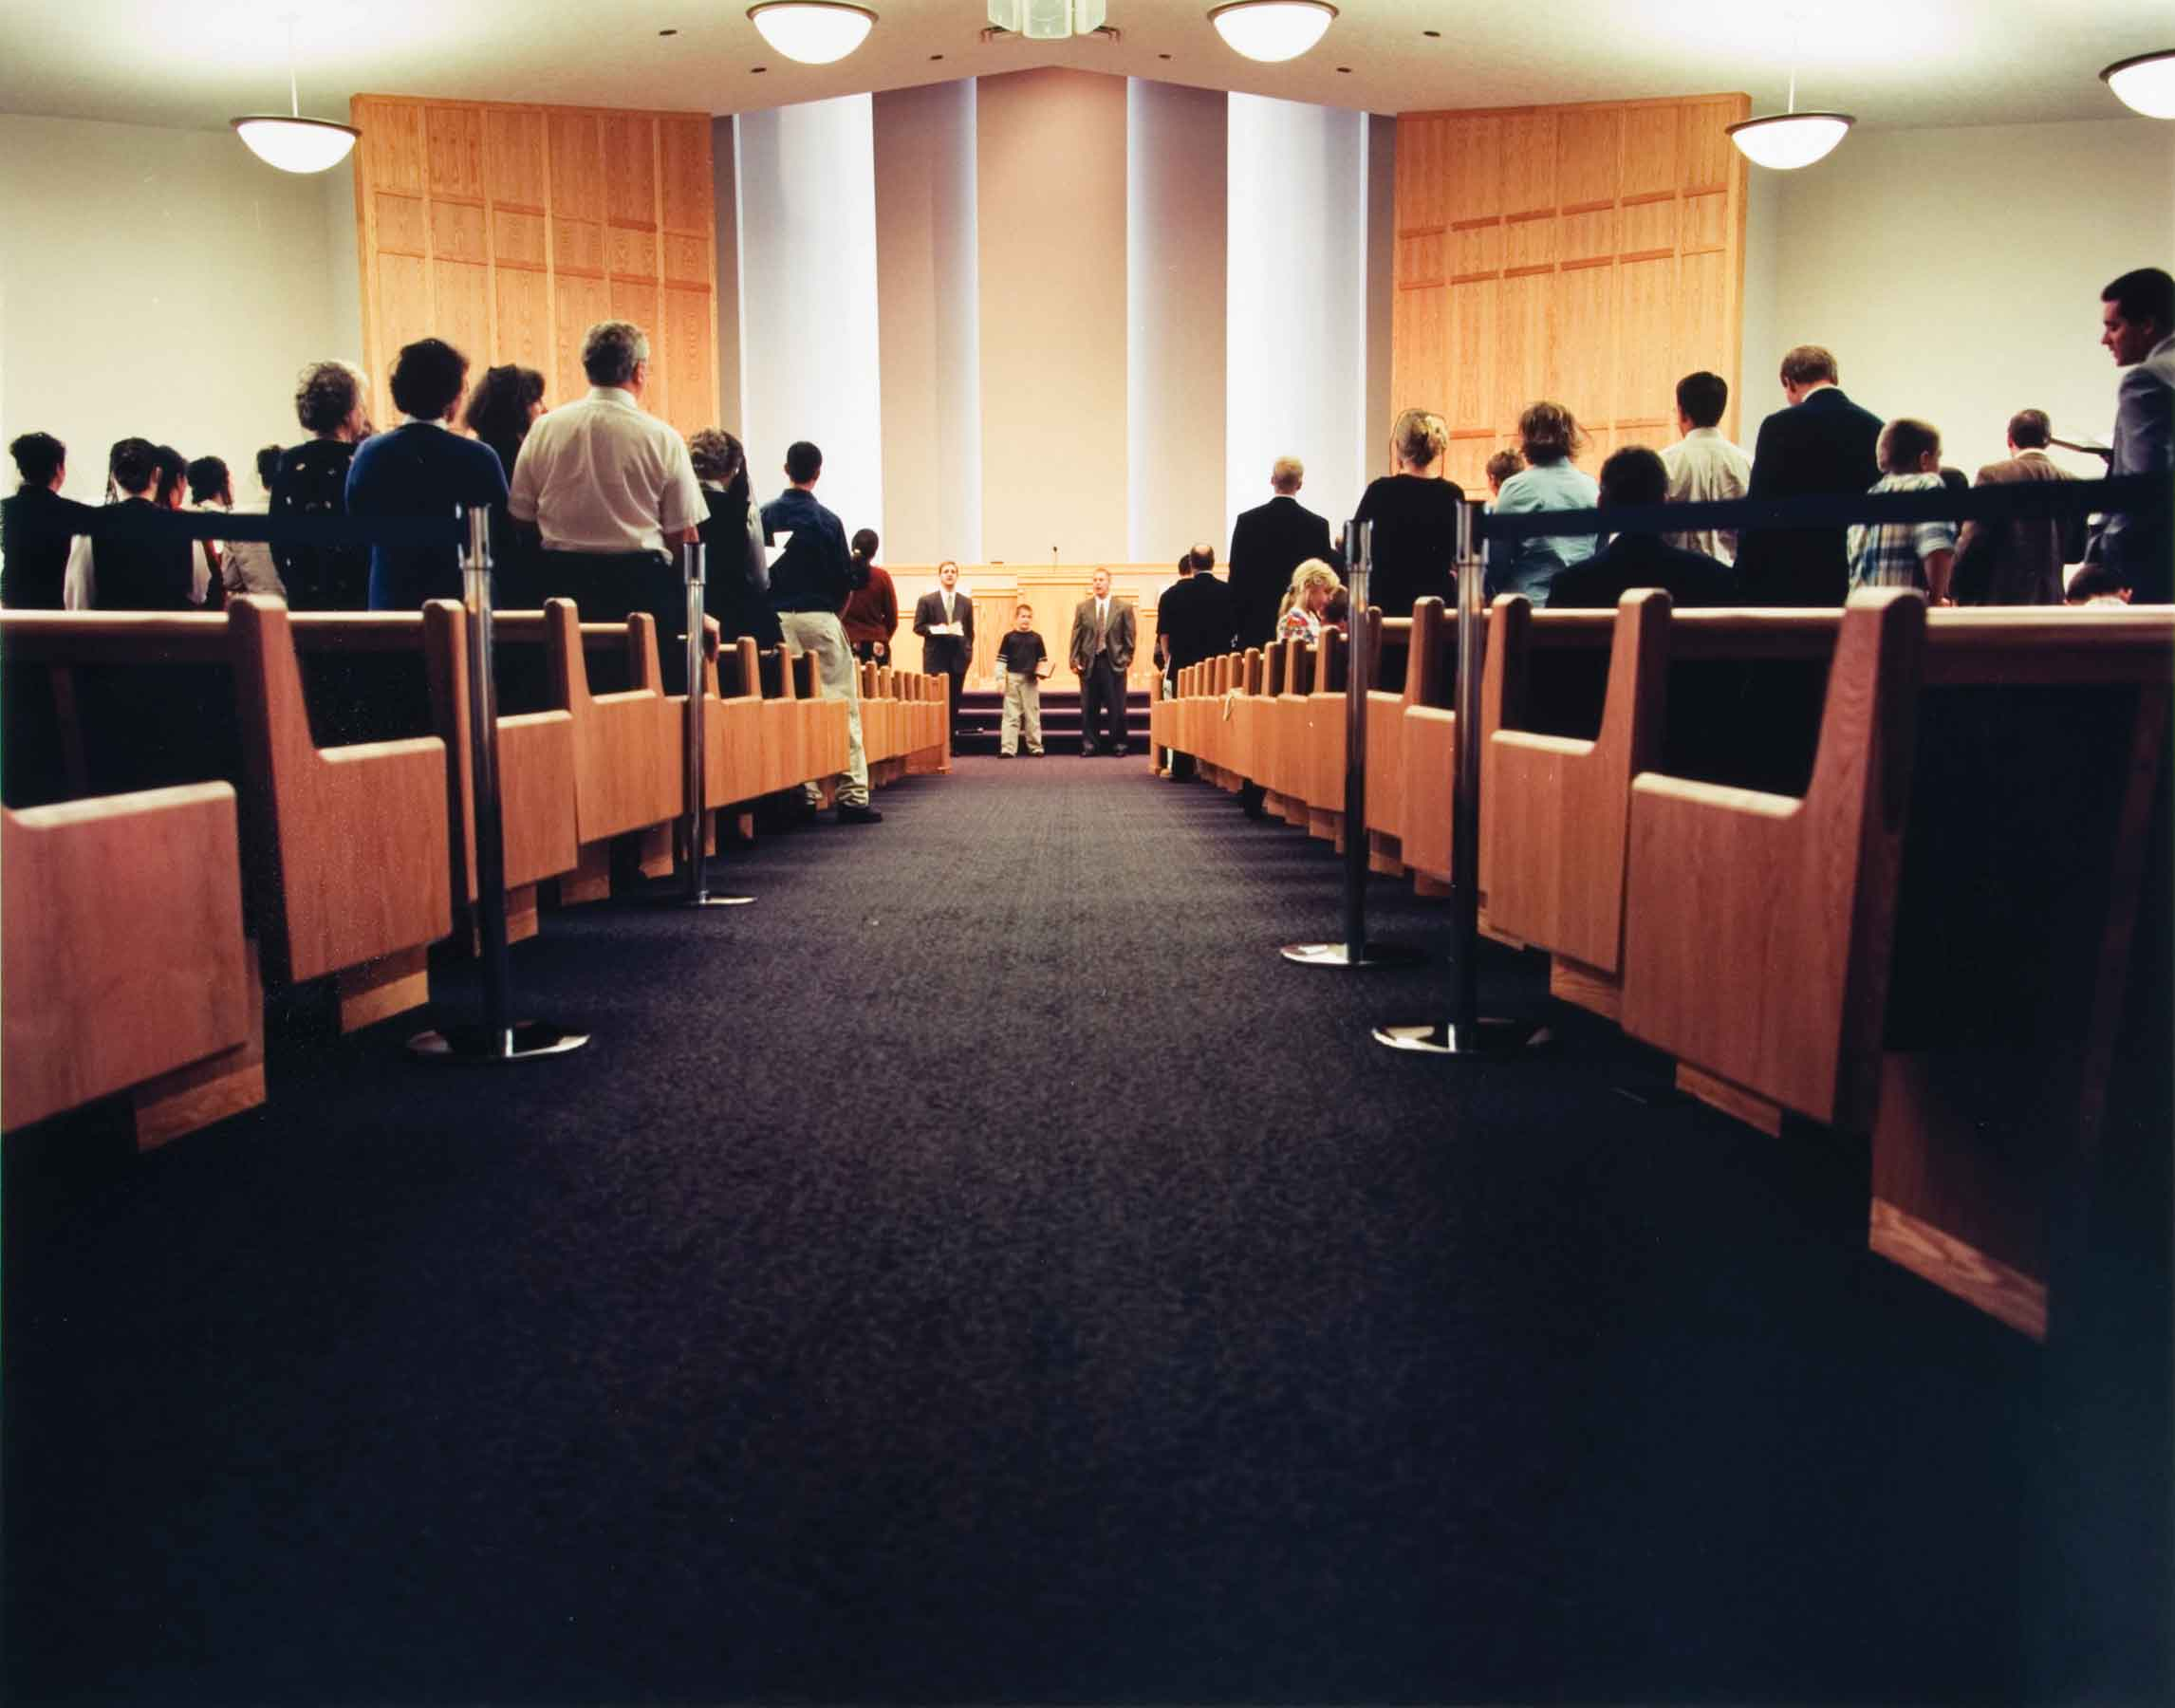 "Angela Strassheim, Untitled (Congregation), 2002, C-print , 11""x14"""